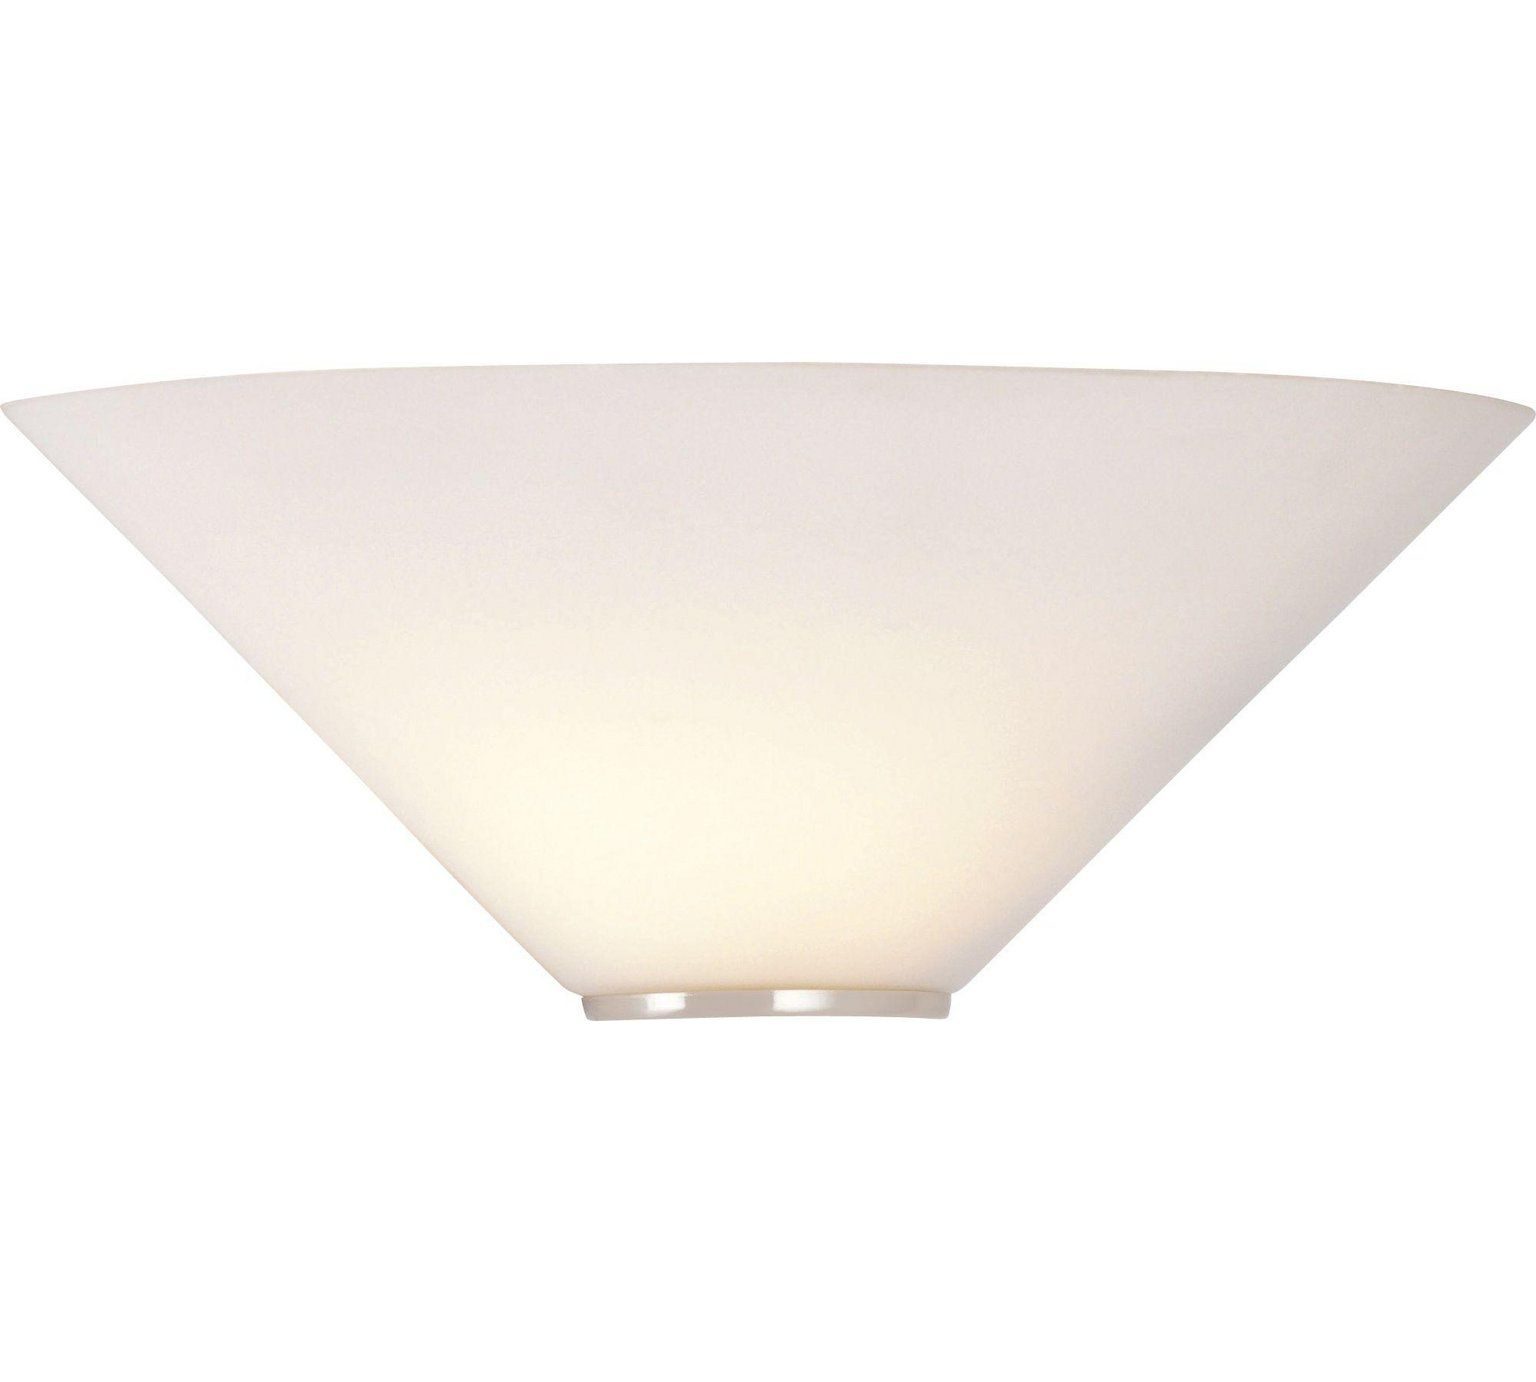 Buy HOME Mozart Glass Uplighter Wall Light at Argos.co.uk - Your ...